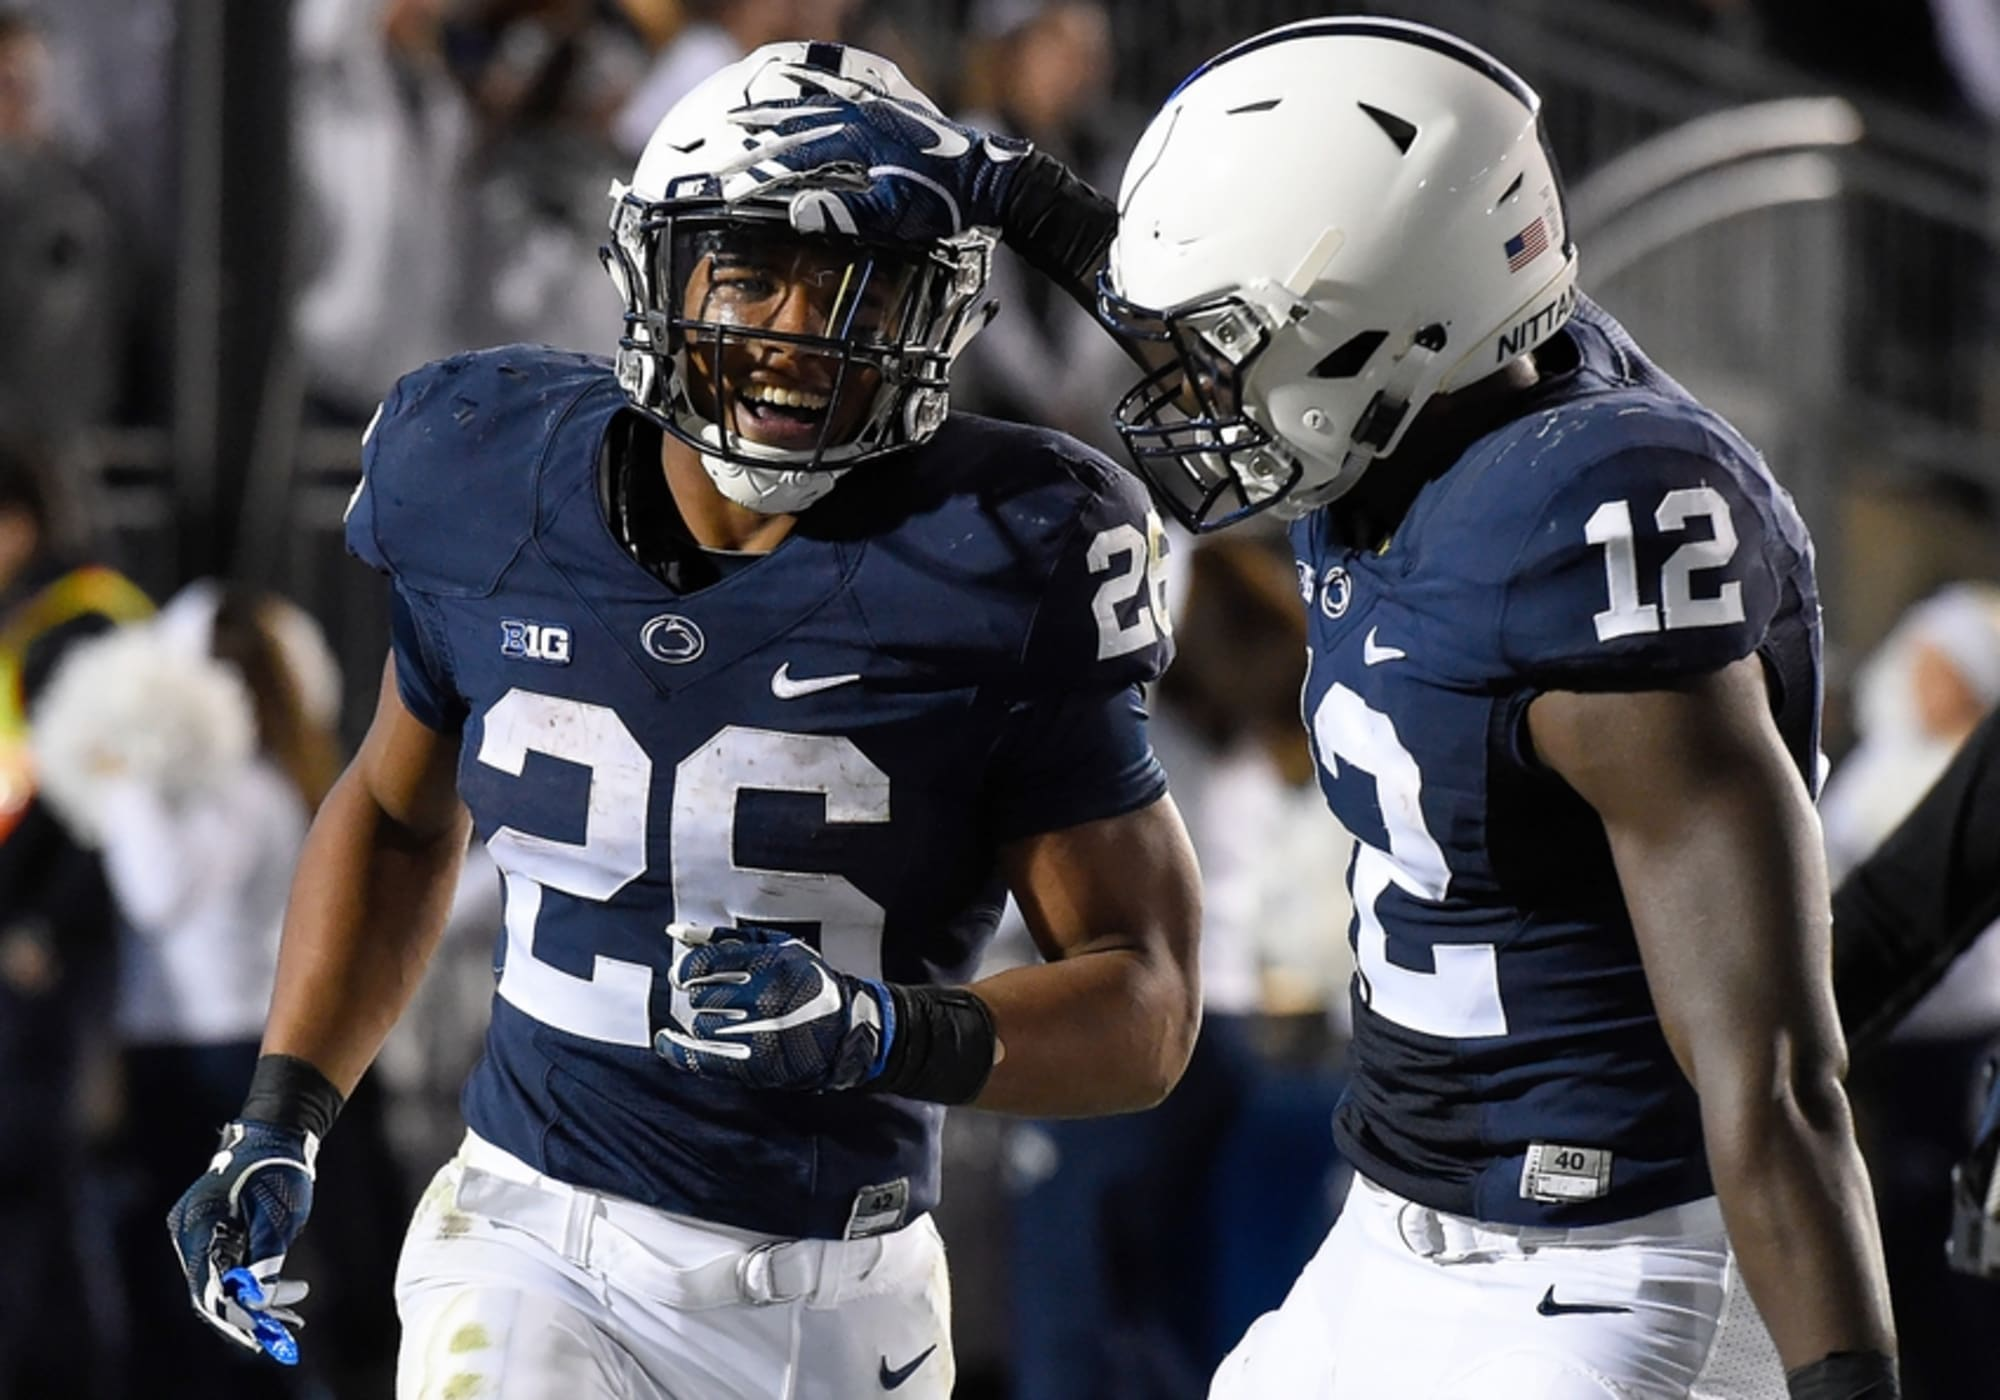 Penn State vs. Wisconsin: Prediction Roundtable